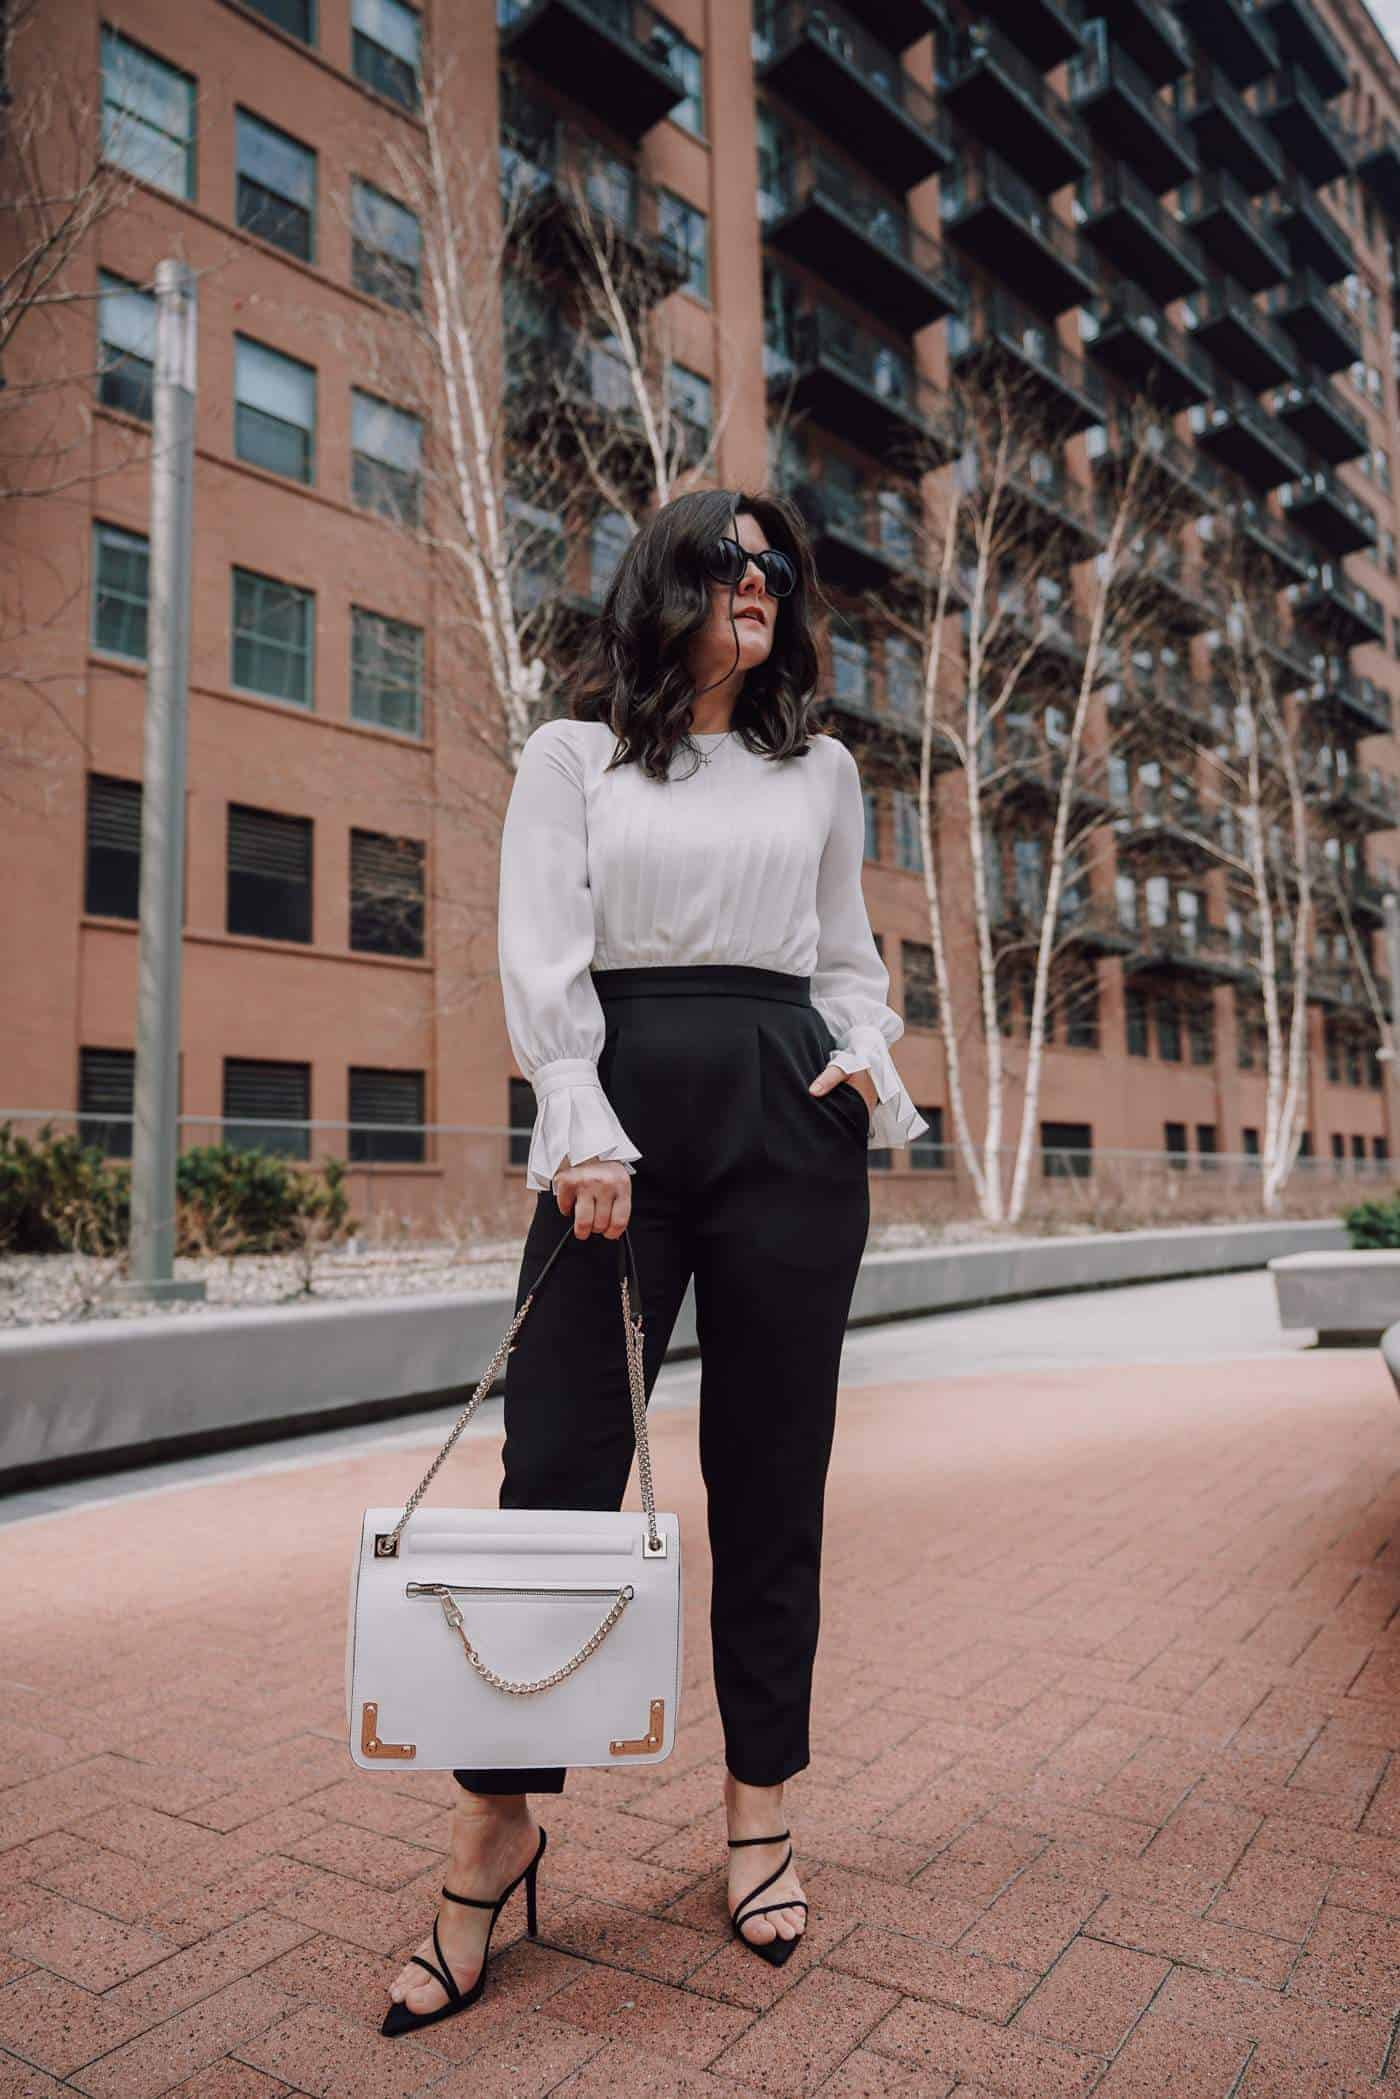 Anna Baun of A Lily Love Affair styling 25 chic jumpsuits for work. Plus, great styling tips for turning your jumpsuit for a killer look in the boardroom to happy hour ready. This Maggy London long sleeve jumpsuit is the perfect addition to your closet. #springstyle #officestyle #maggylondon